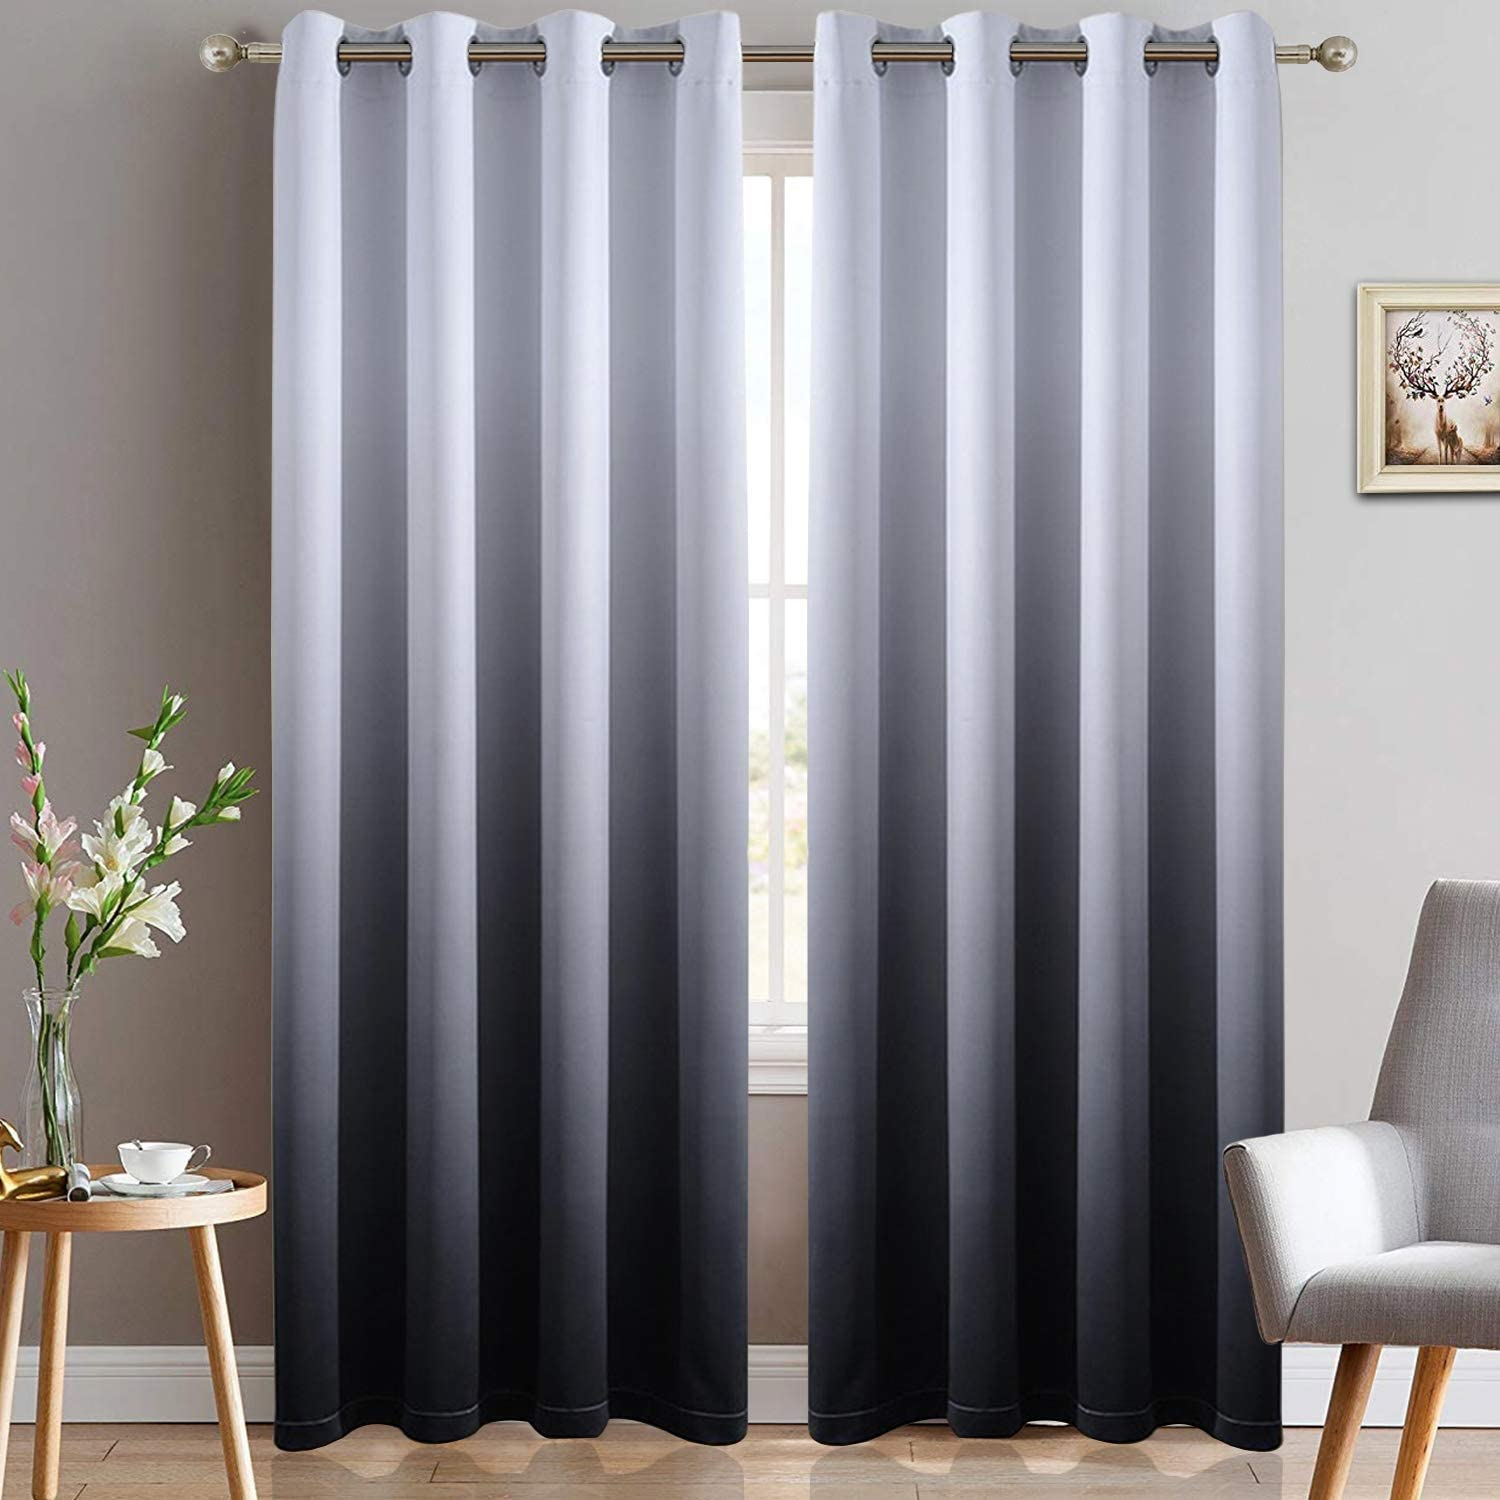 Yakamok Room Darkening Black Gradient Color Ombre Blackout Curtains Thickening Polyester Thermal Insulated Grommet Window Drapes for Living Room/Bedroom (Black, 2 Panels, 52x84 Inch)